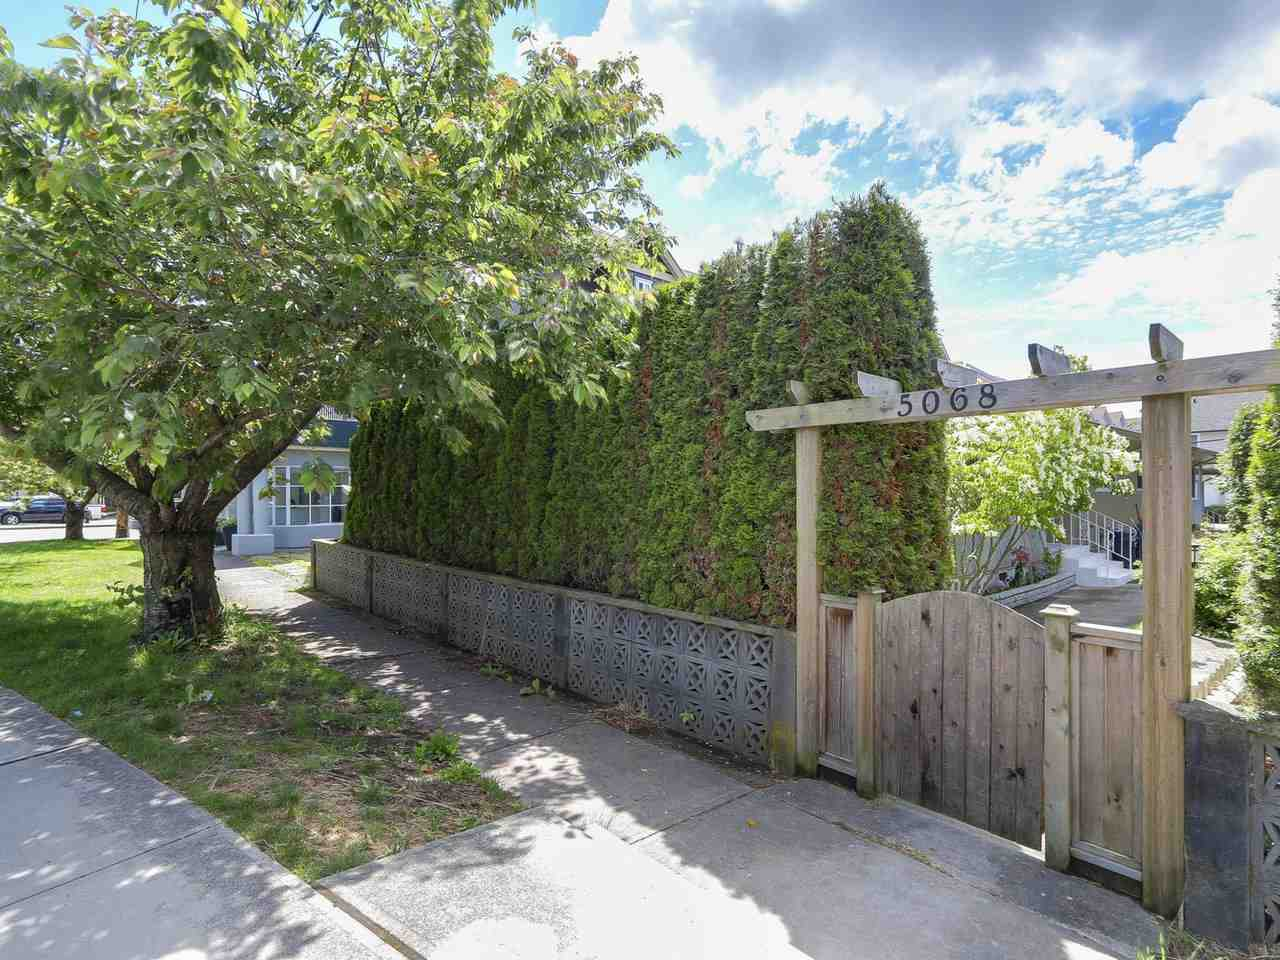 Photo 15: C 5068 47A Avenue in Delta: Ladner Elementary House 1/2 Duplex for sale (Ladner)  : MLS(r) # R2179730